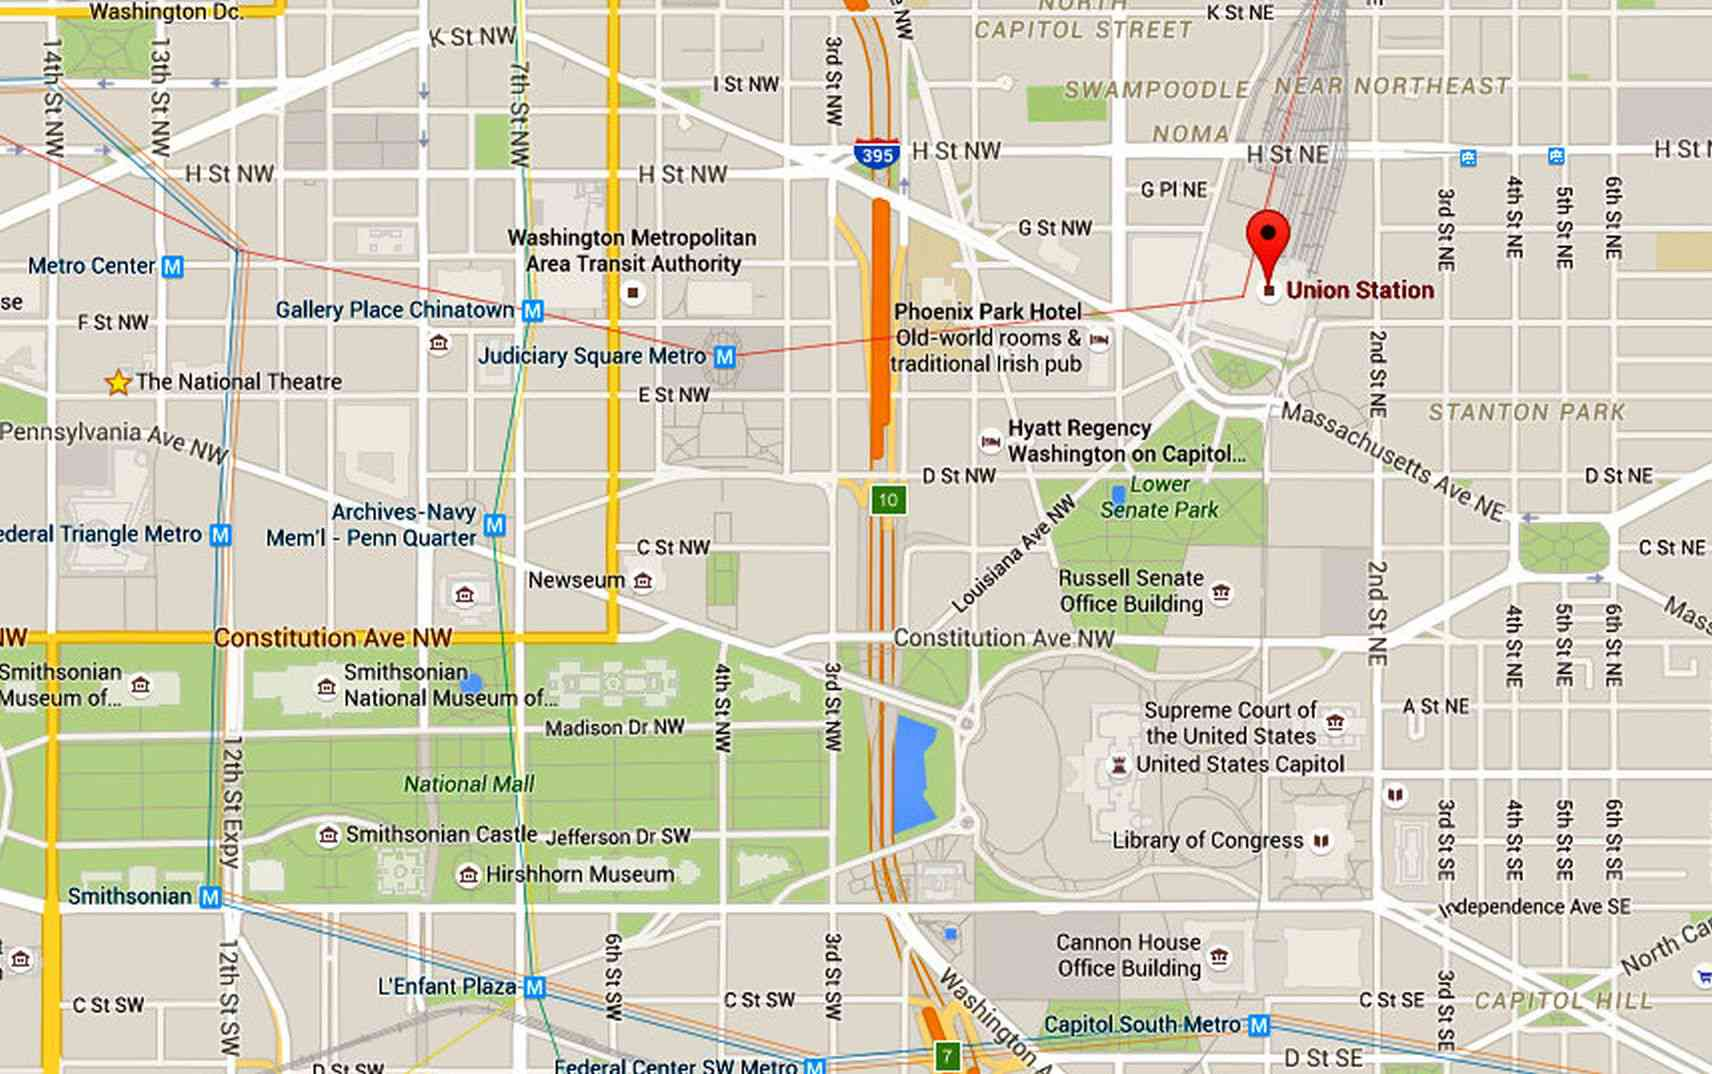 Union Station Map and Directions: Washington DC on